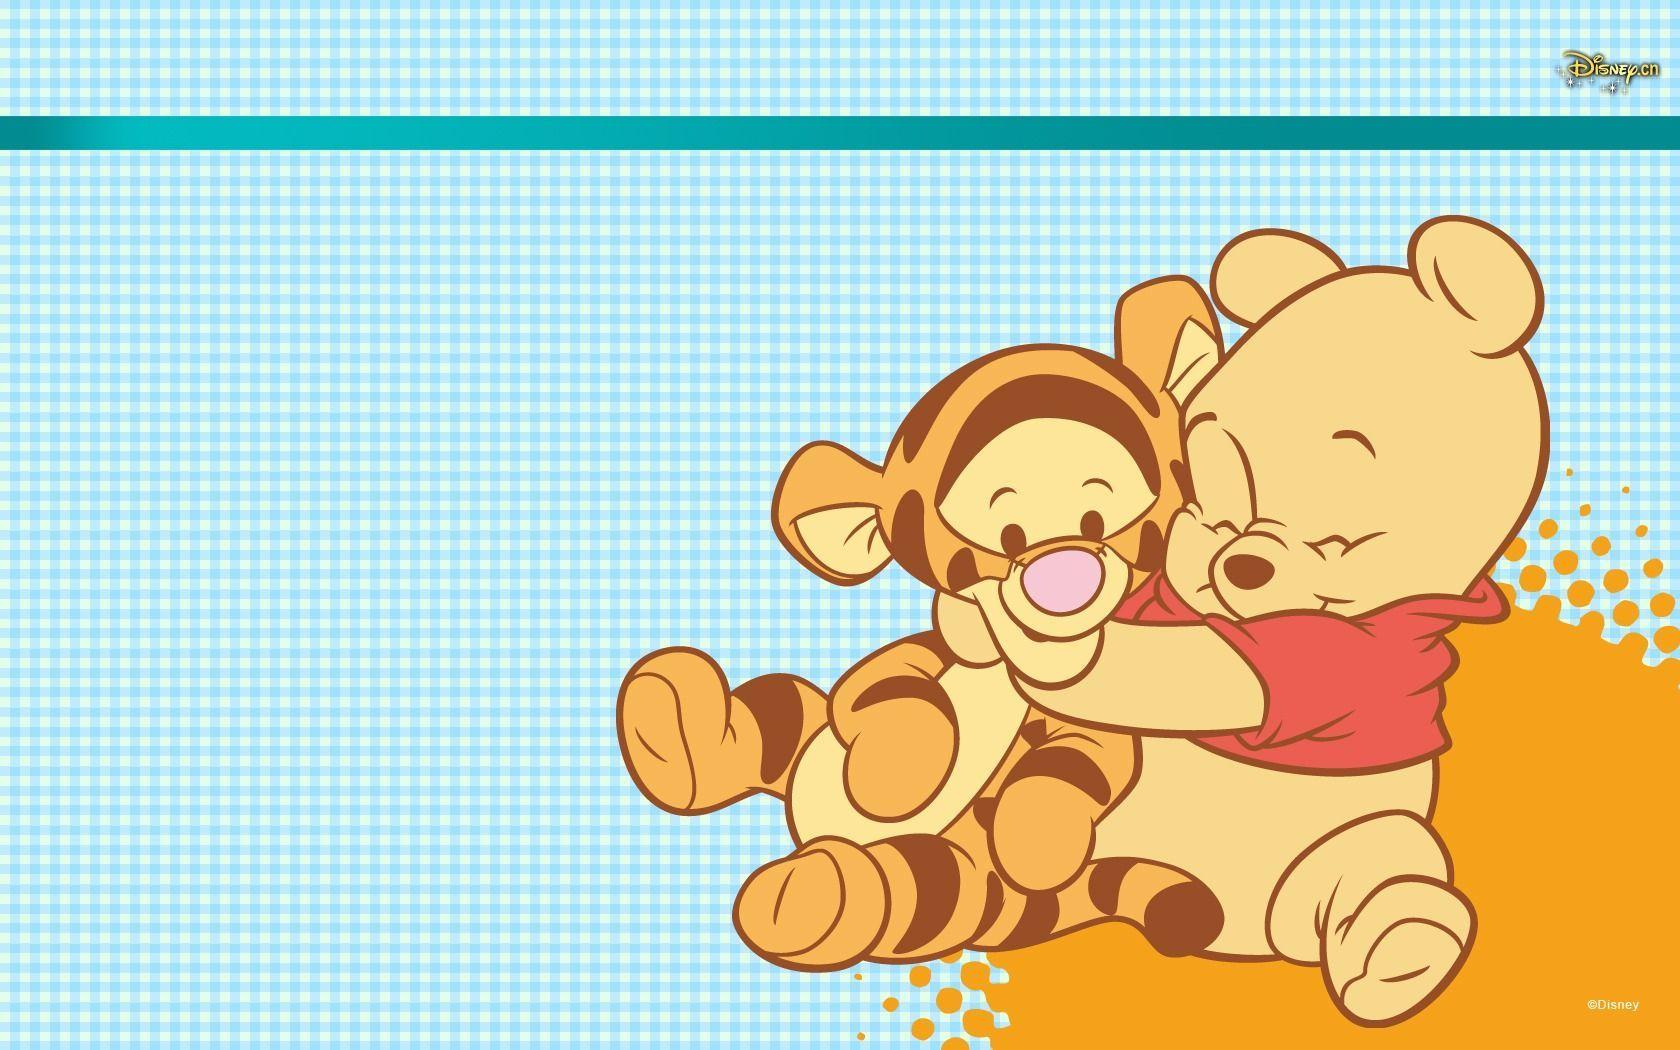 Pooh wallpapers wallpaper cave winnie the pooh wallpaper hd wallpapers pictures voltagebd Image collections